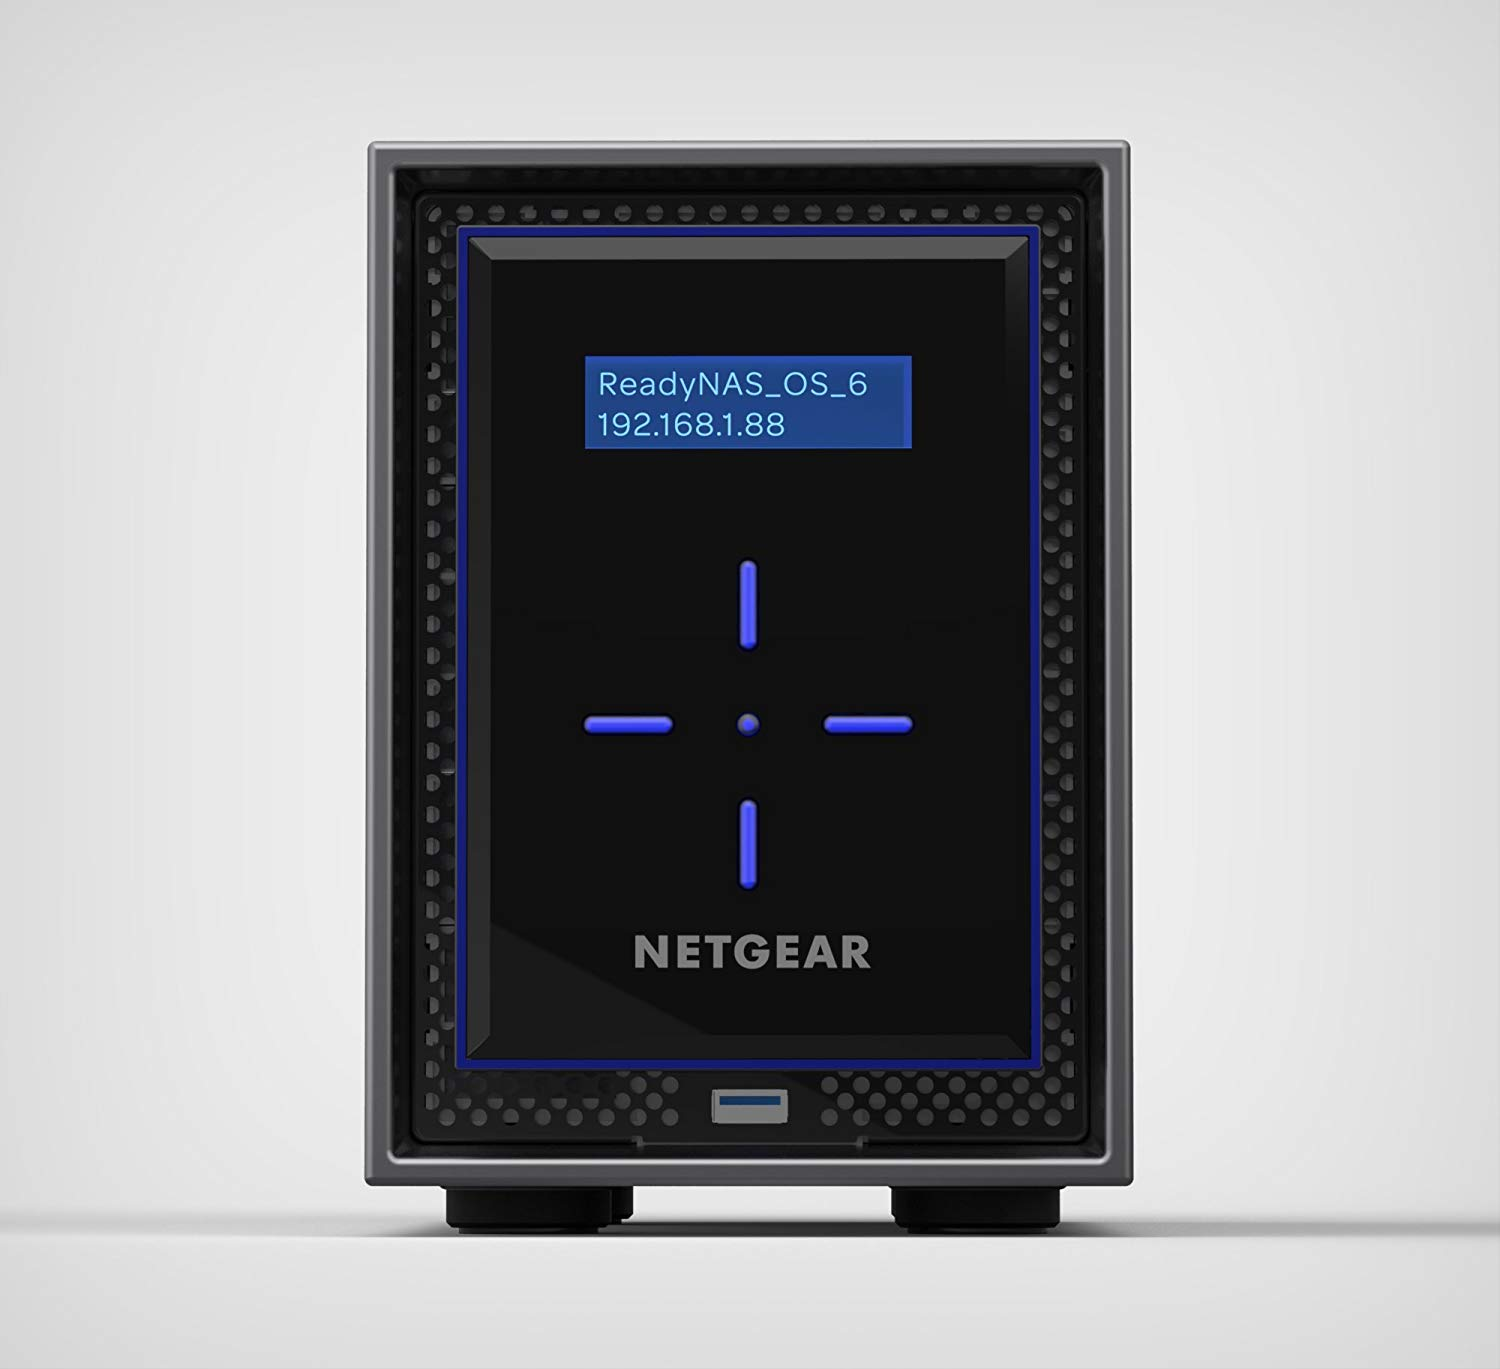 Netgear 4TB ReadyNAS 422 2GB RAM 2 Bay NAS